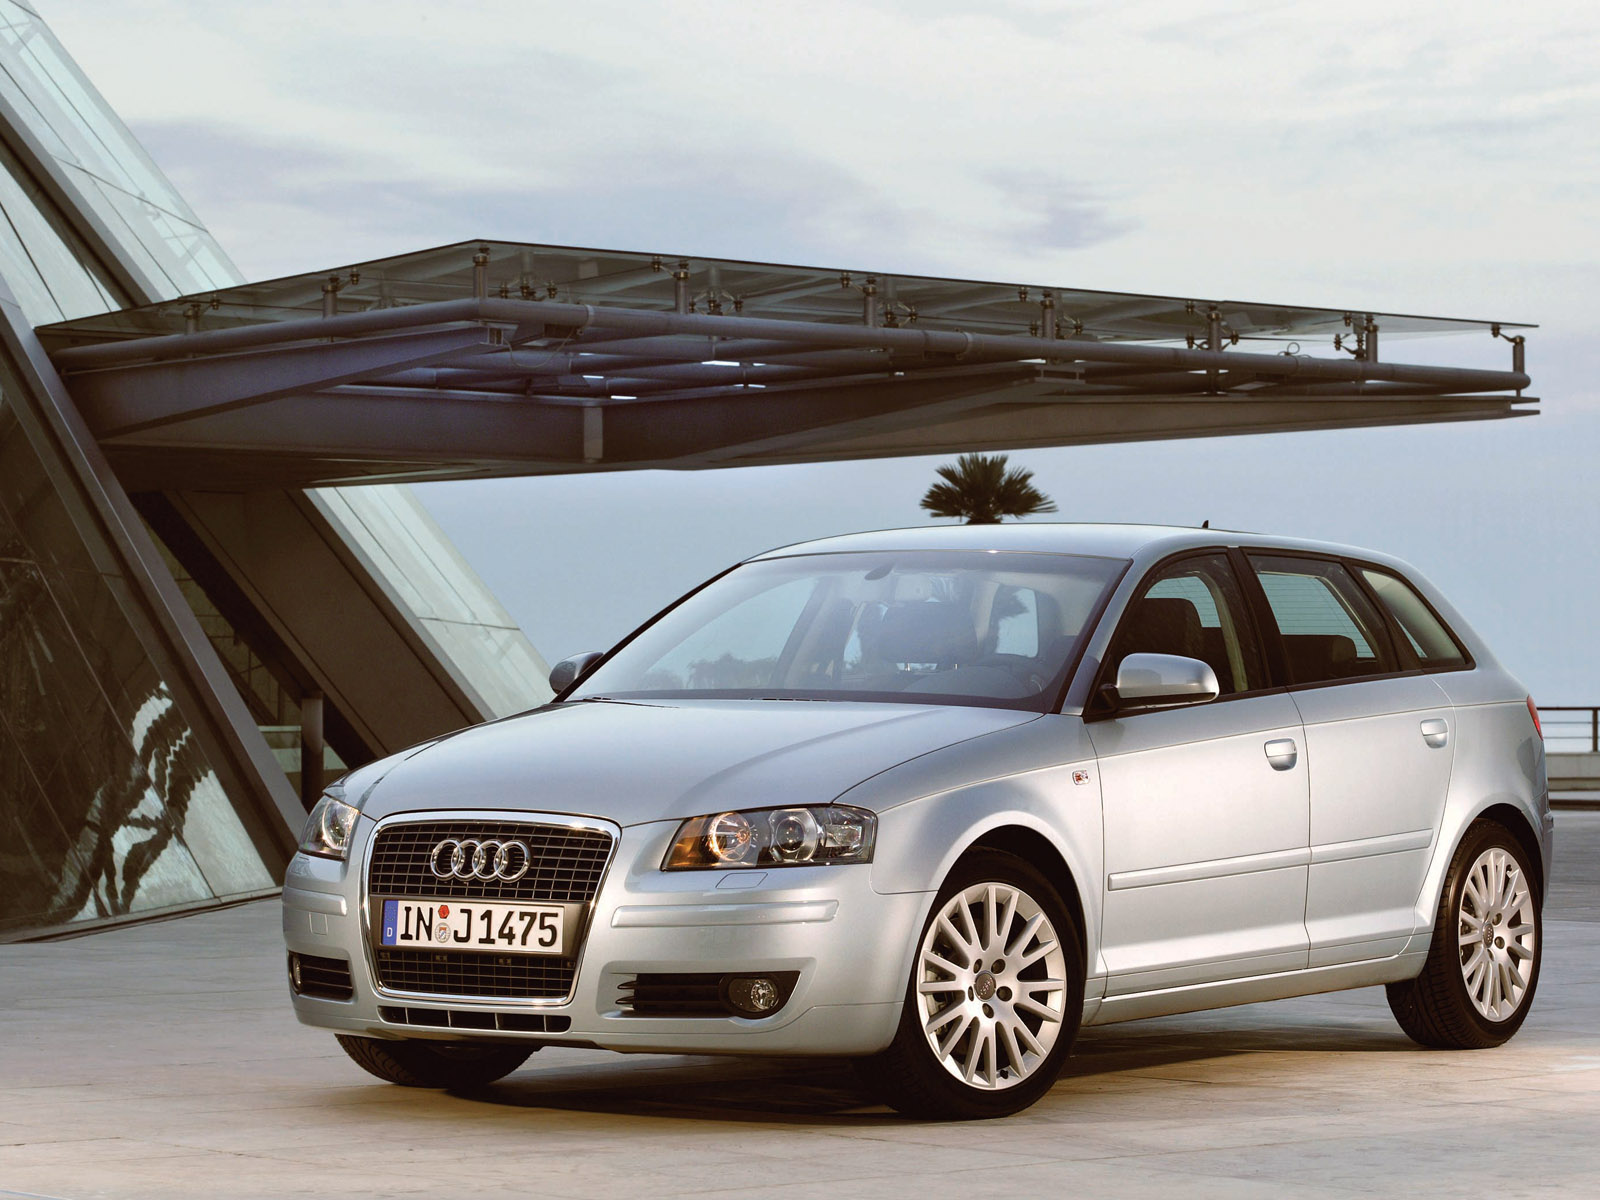 audi a3 sportback 2005 audi a3 sportback 2005 photo 10 car in pictures car photo gallery. Black Bedroom Furniture Sets. Home Design Ideas